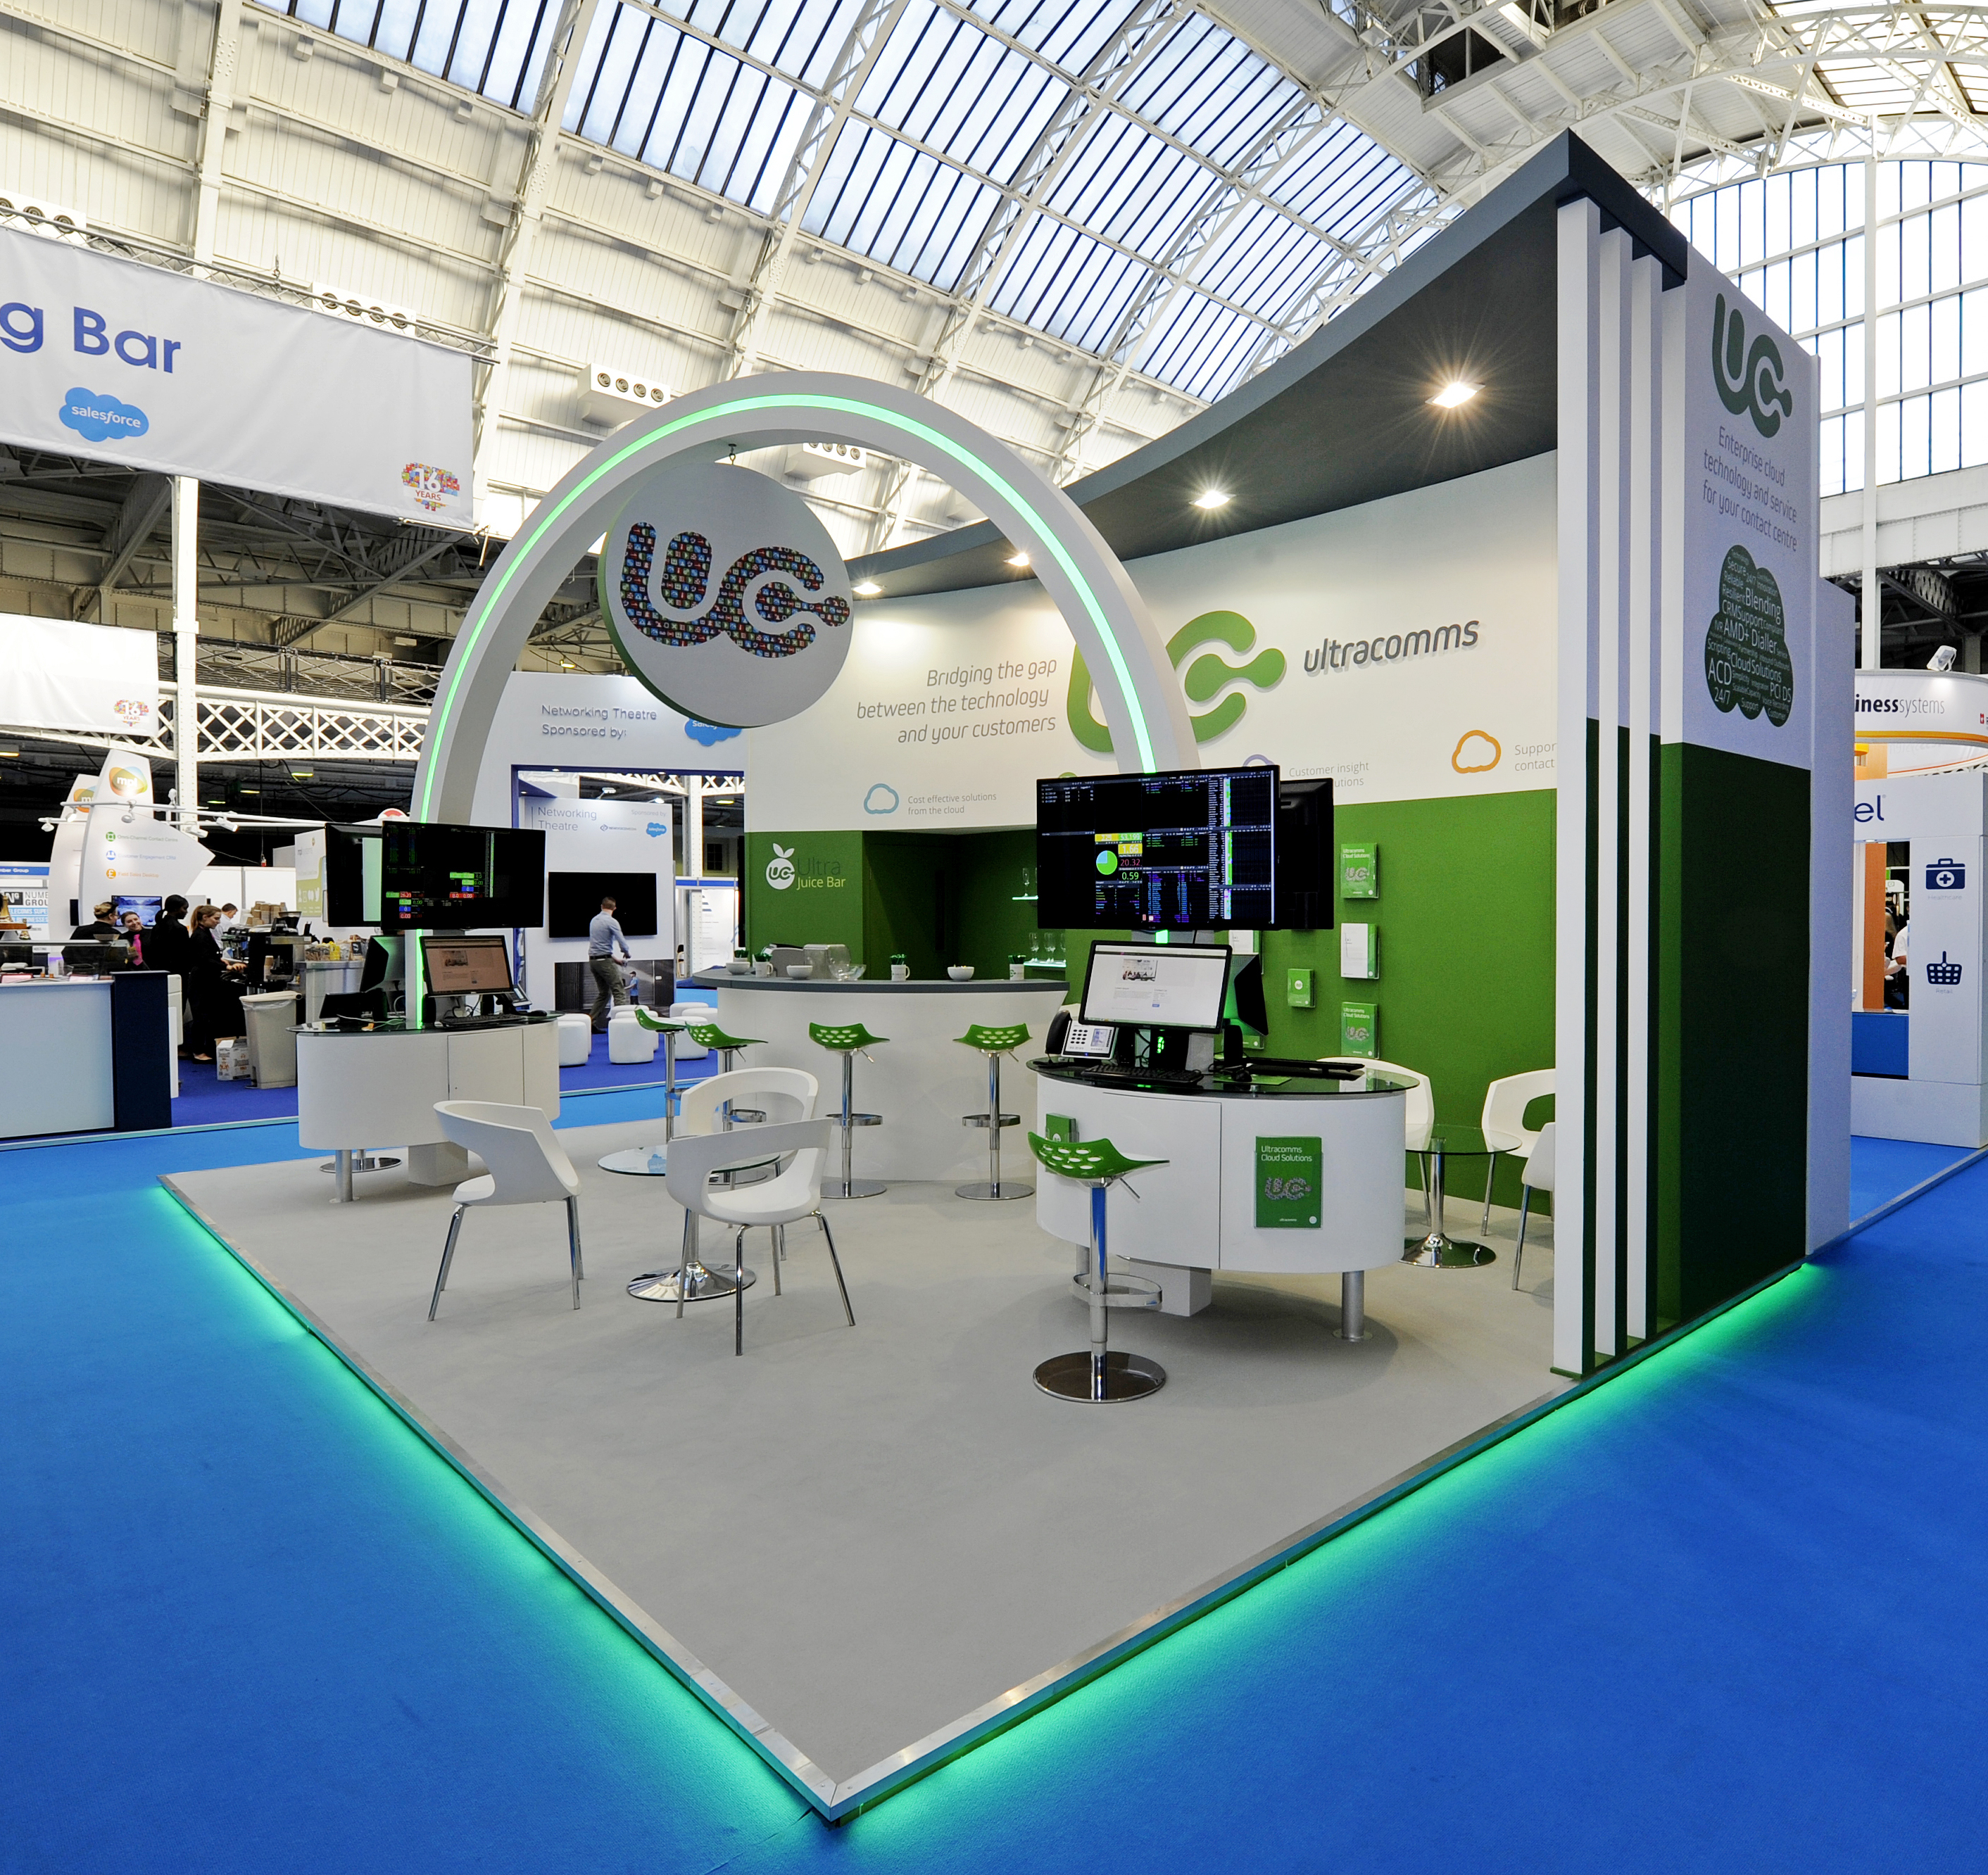 Exhibition Stand Design Case Studies : Exhibition stand design inspiration